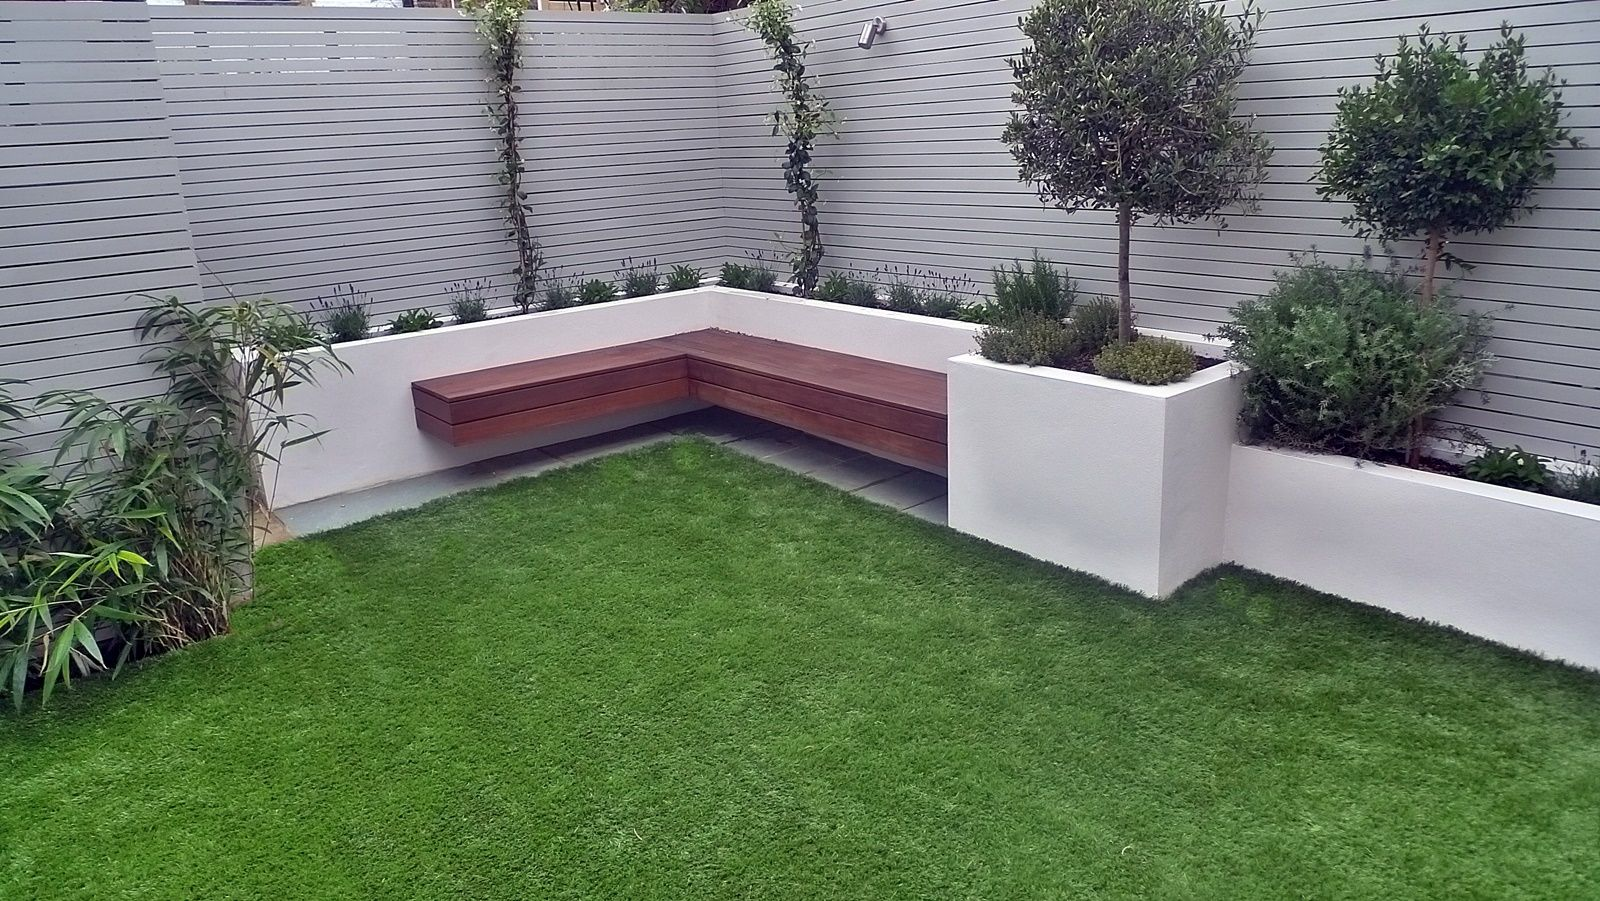 hardwood screen trellis privacy fence easi grass lawn raised beds